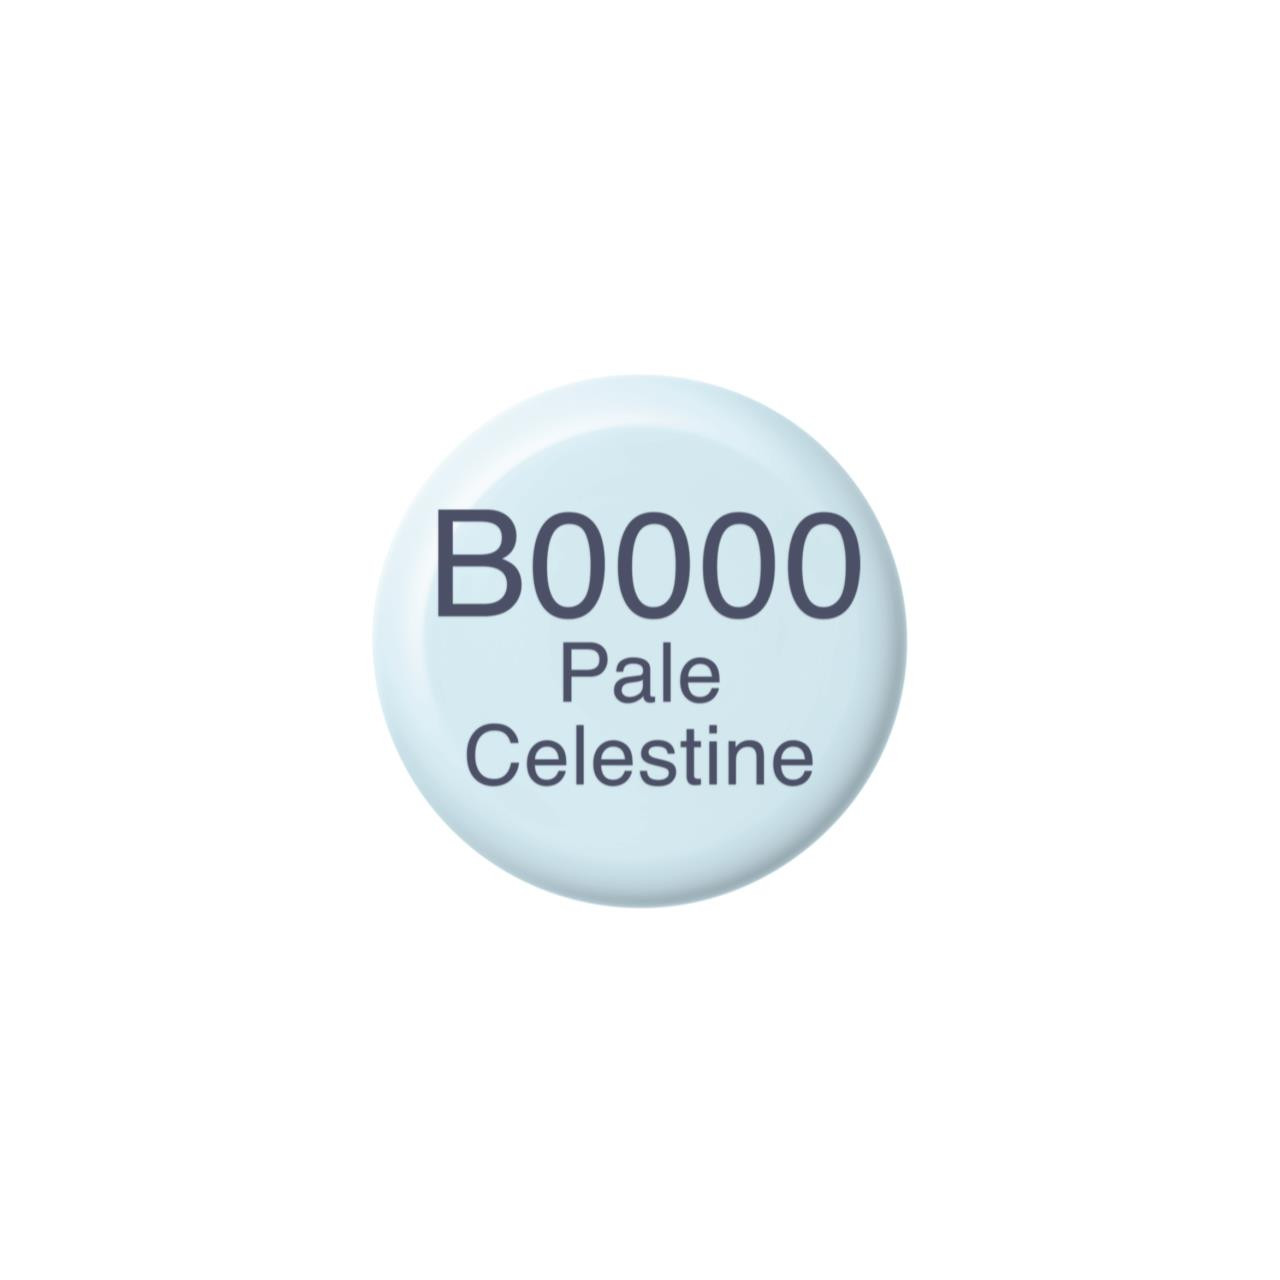 B0000 Pale Celestine, Copic Ink - 4511338055809